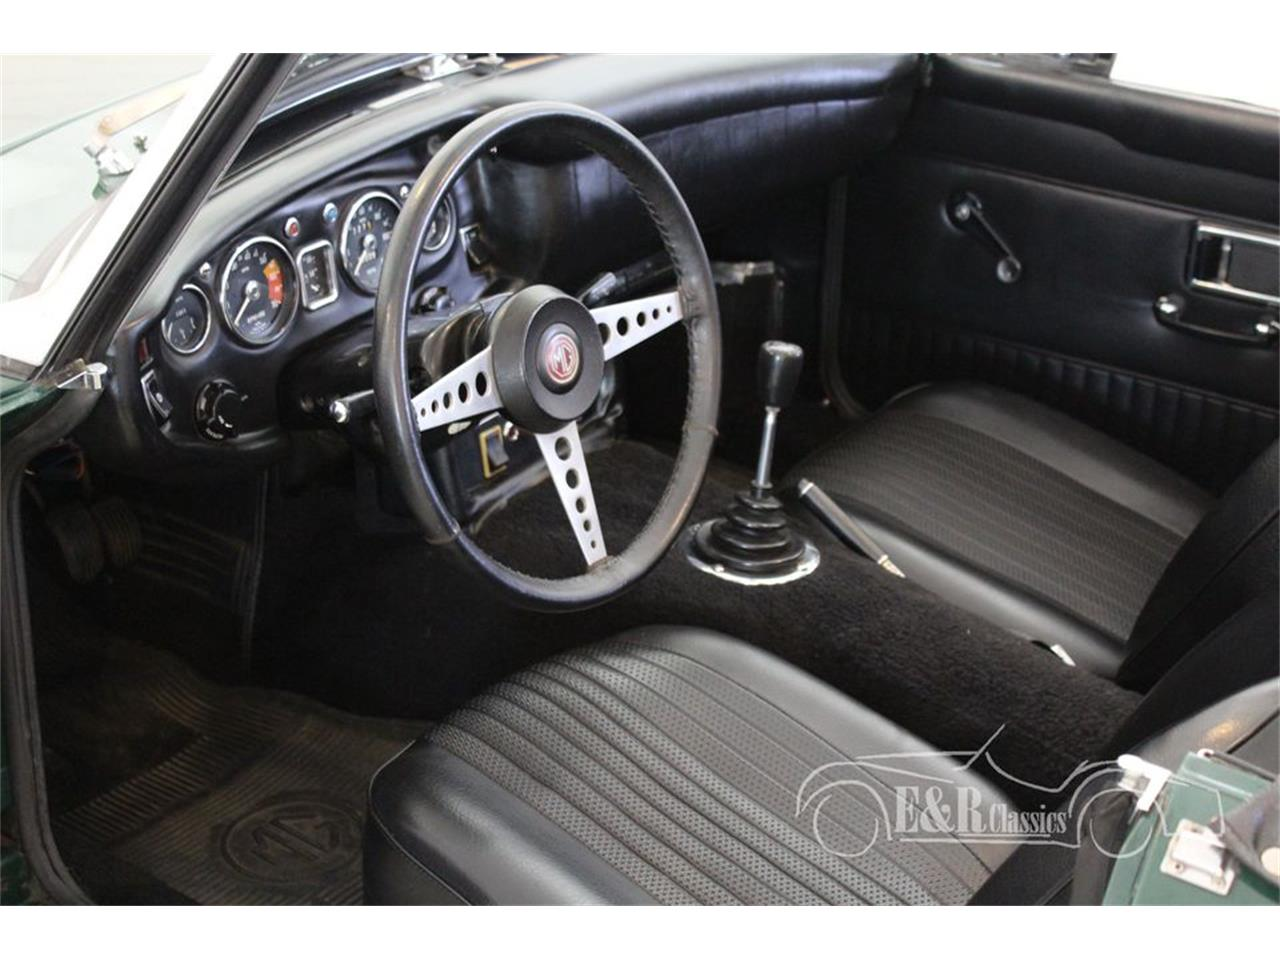 Large Picture of 1970 MG MGB located in Noord Brabant - $23,650.00 - MGNE